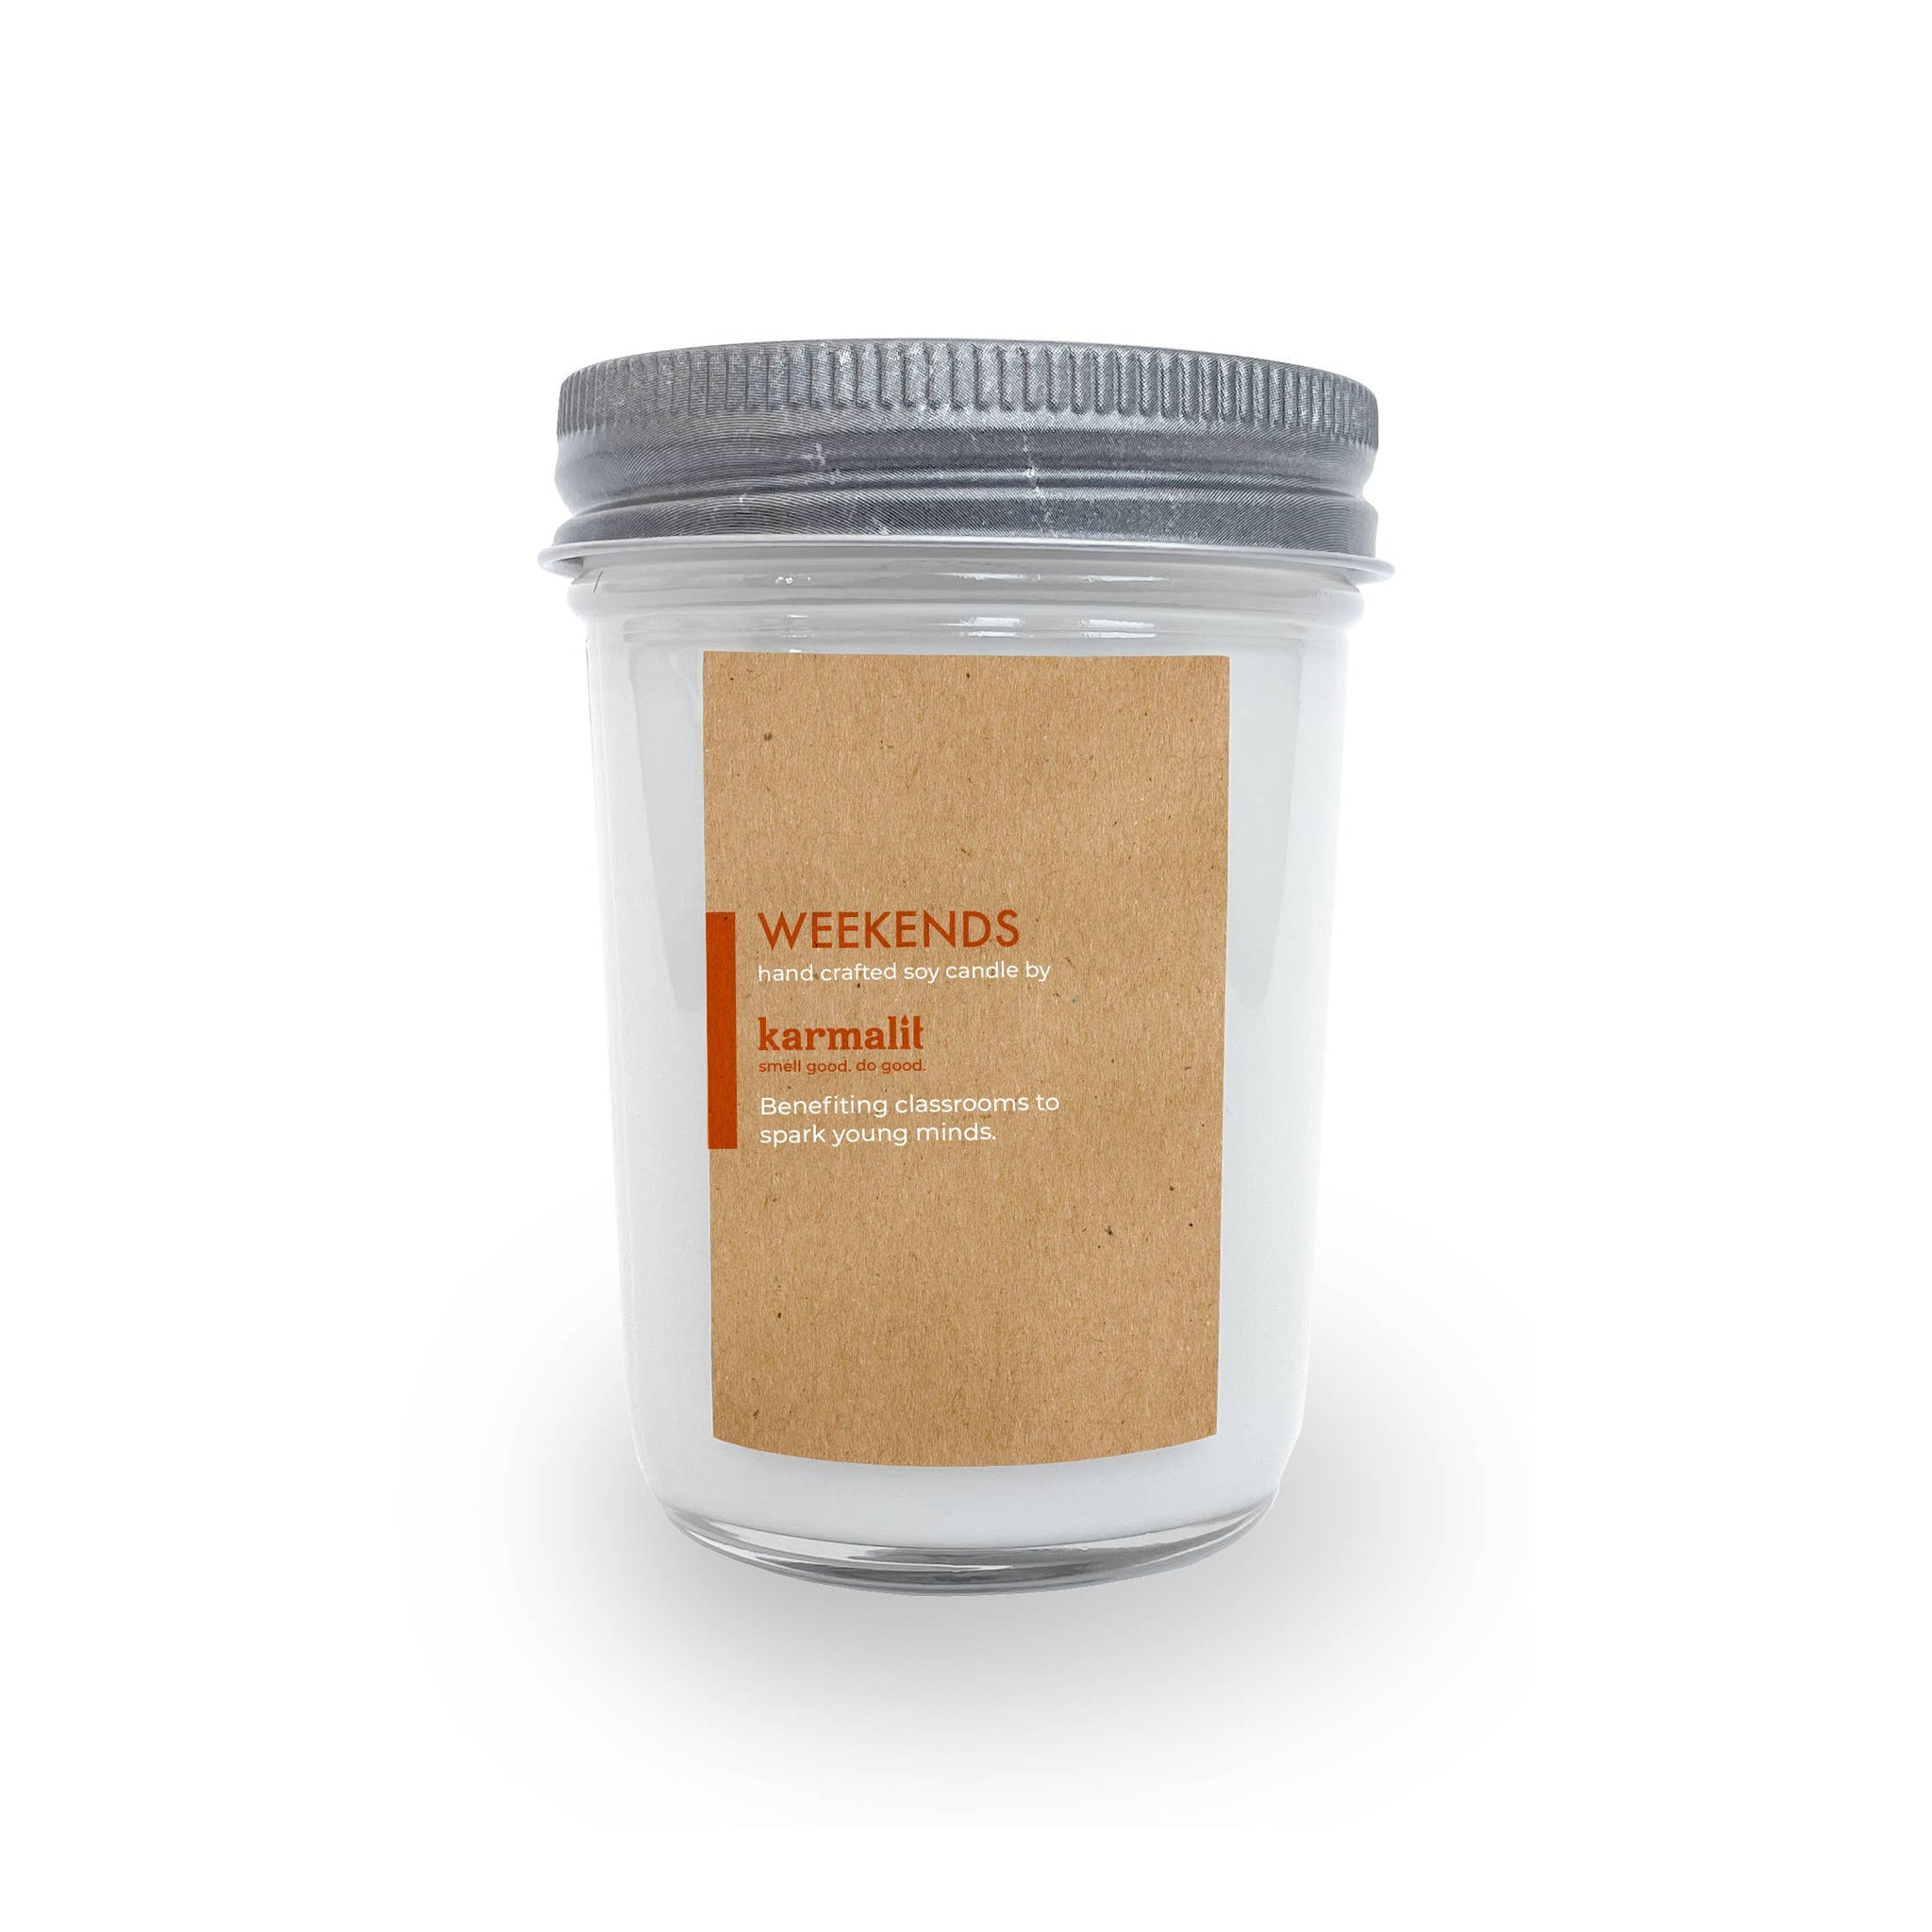 Karmalit Weekends 8 oz Candle